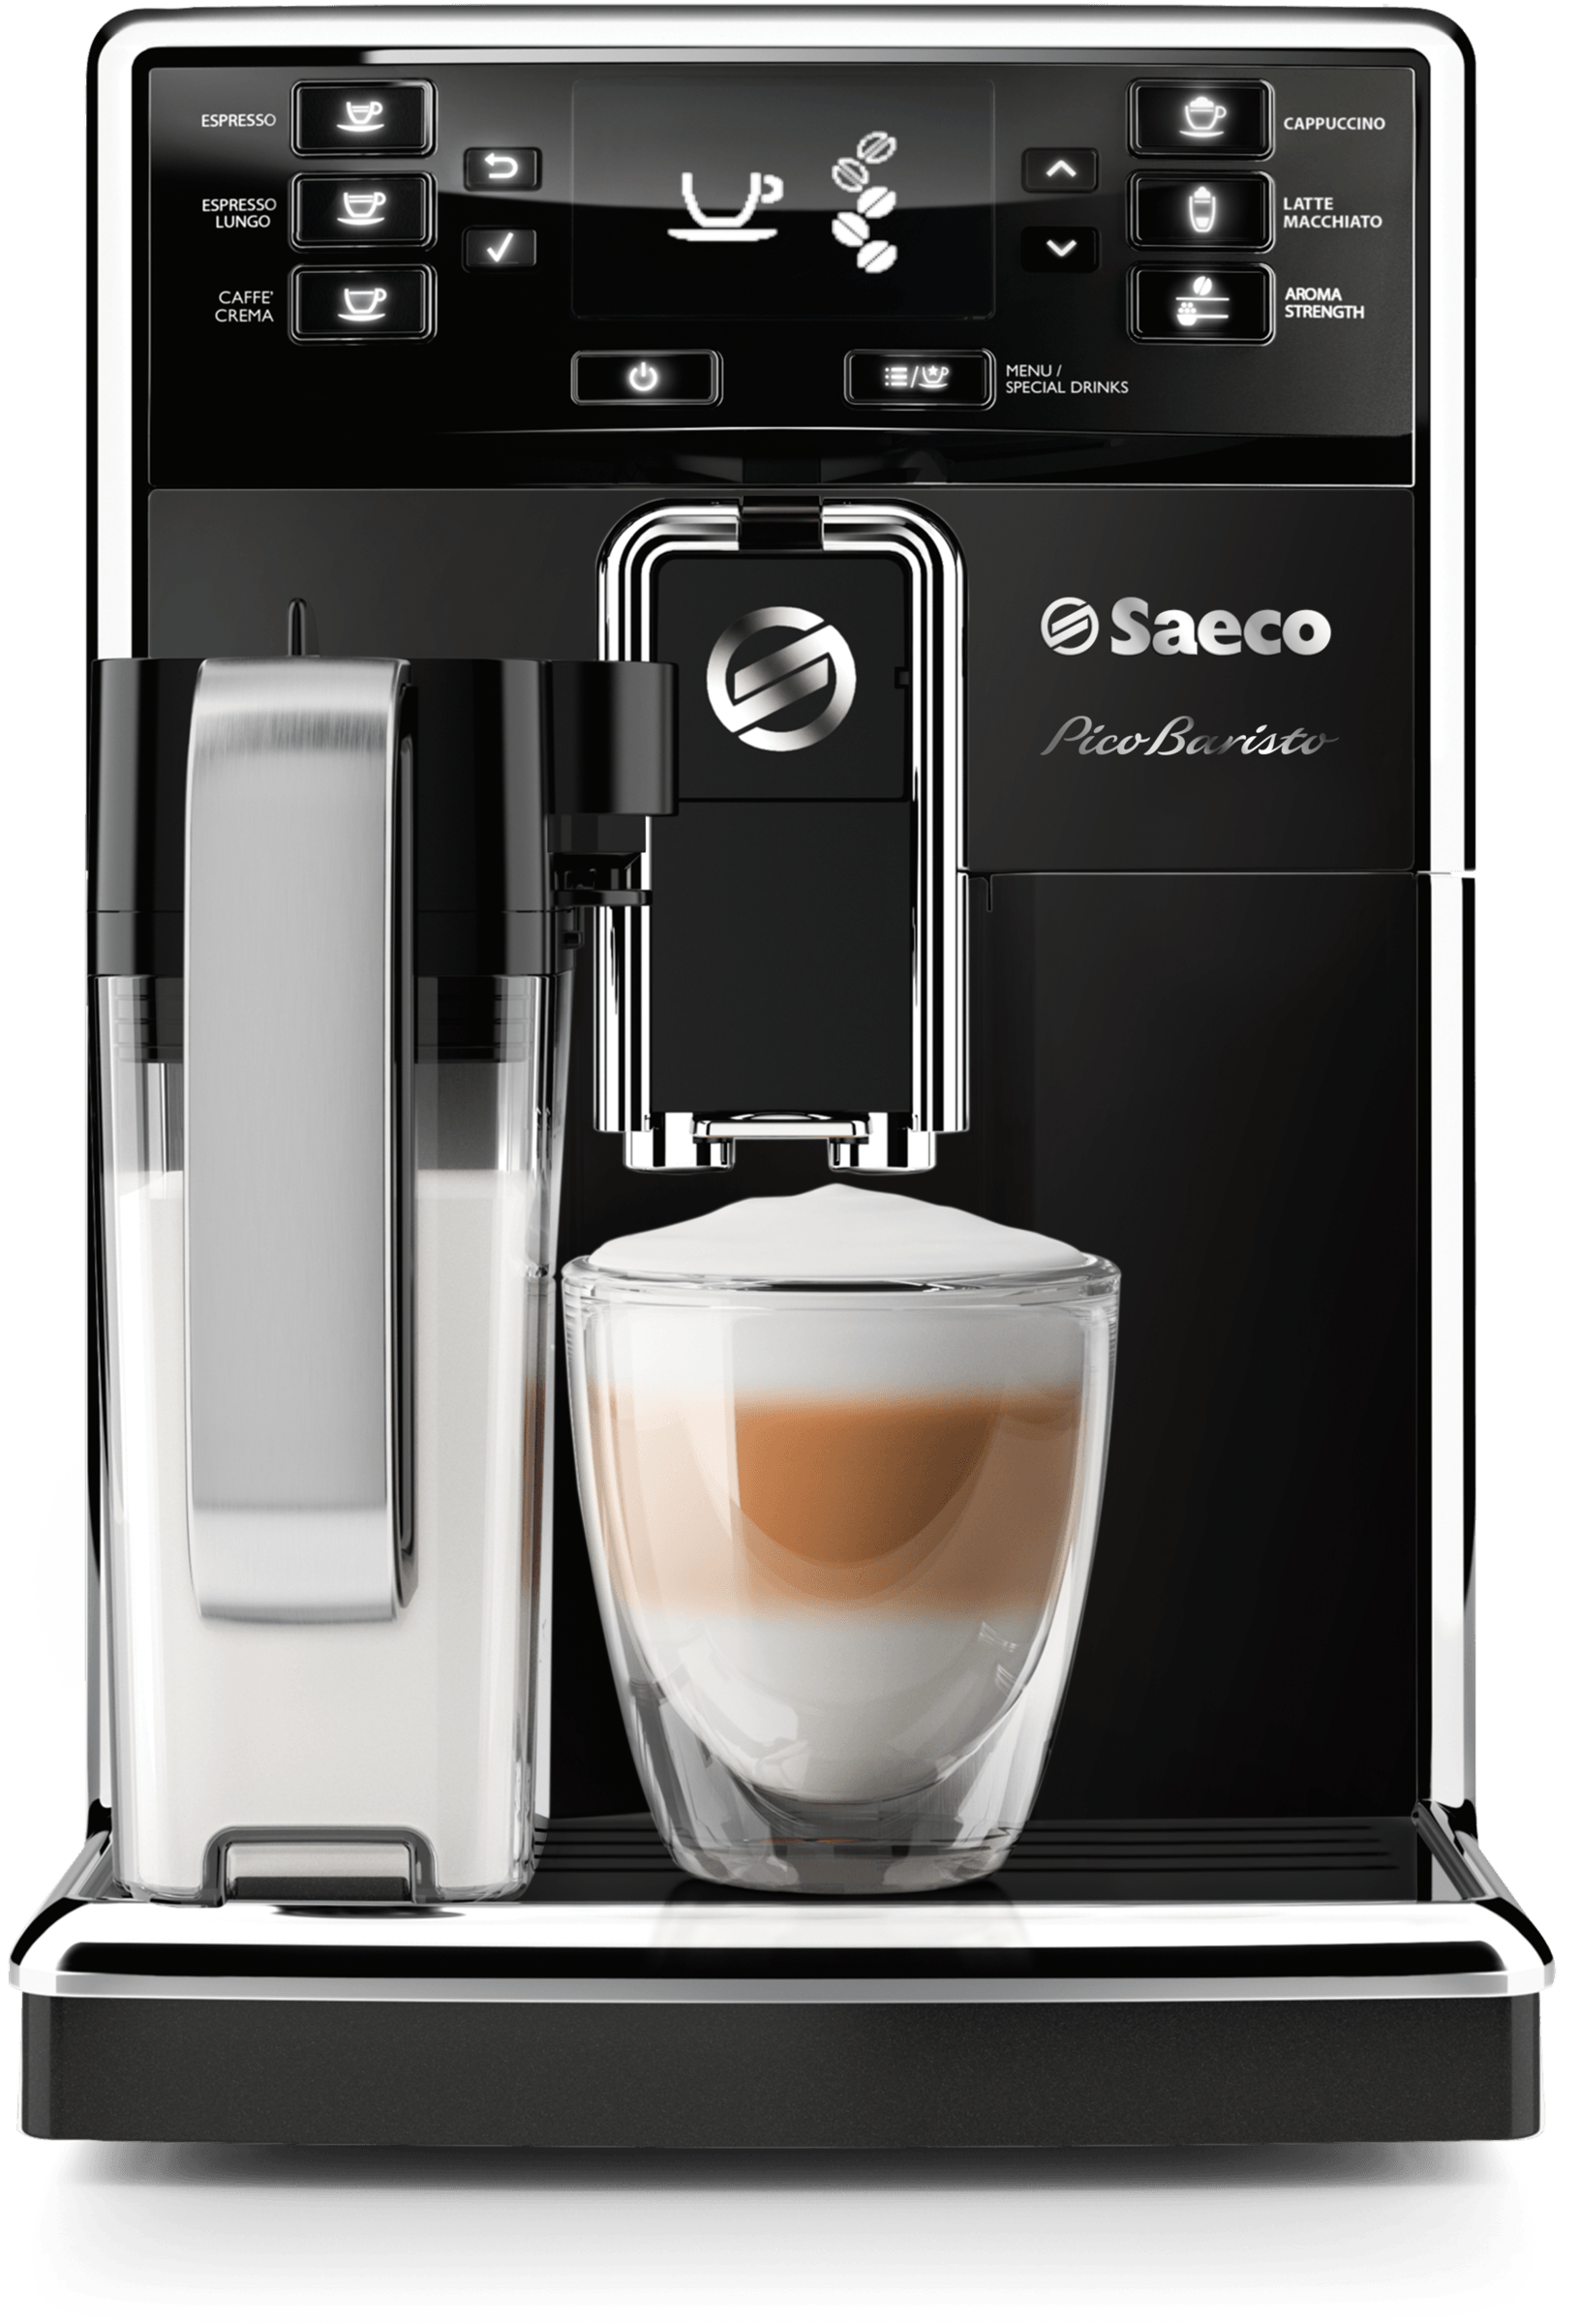 Saeco Cofee machine in Black Stainless Steel color showcased by Corbeil Electro Store